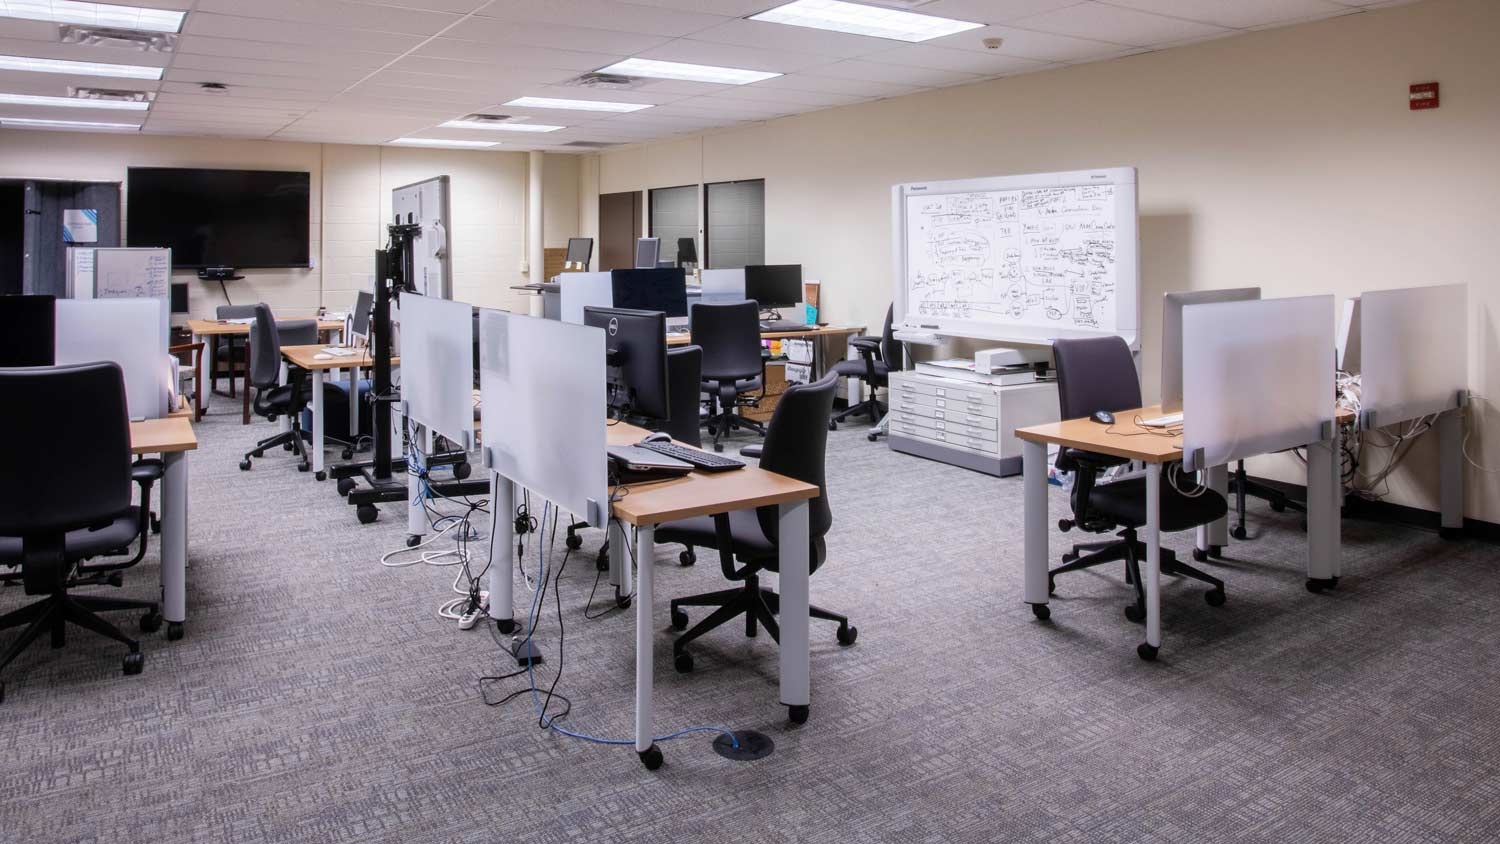 Sectioned off computer lab with different work stations spread out throughout the room